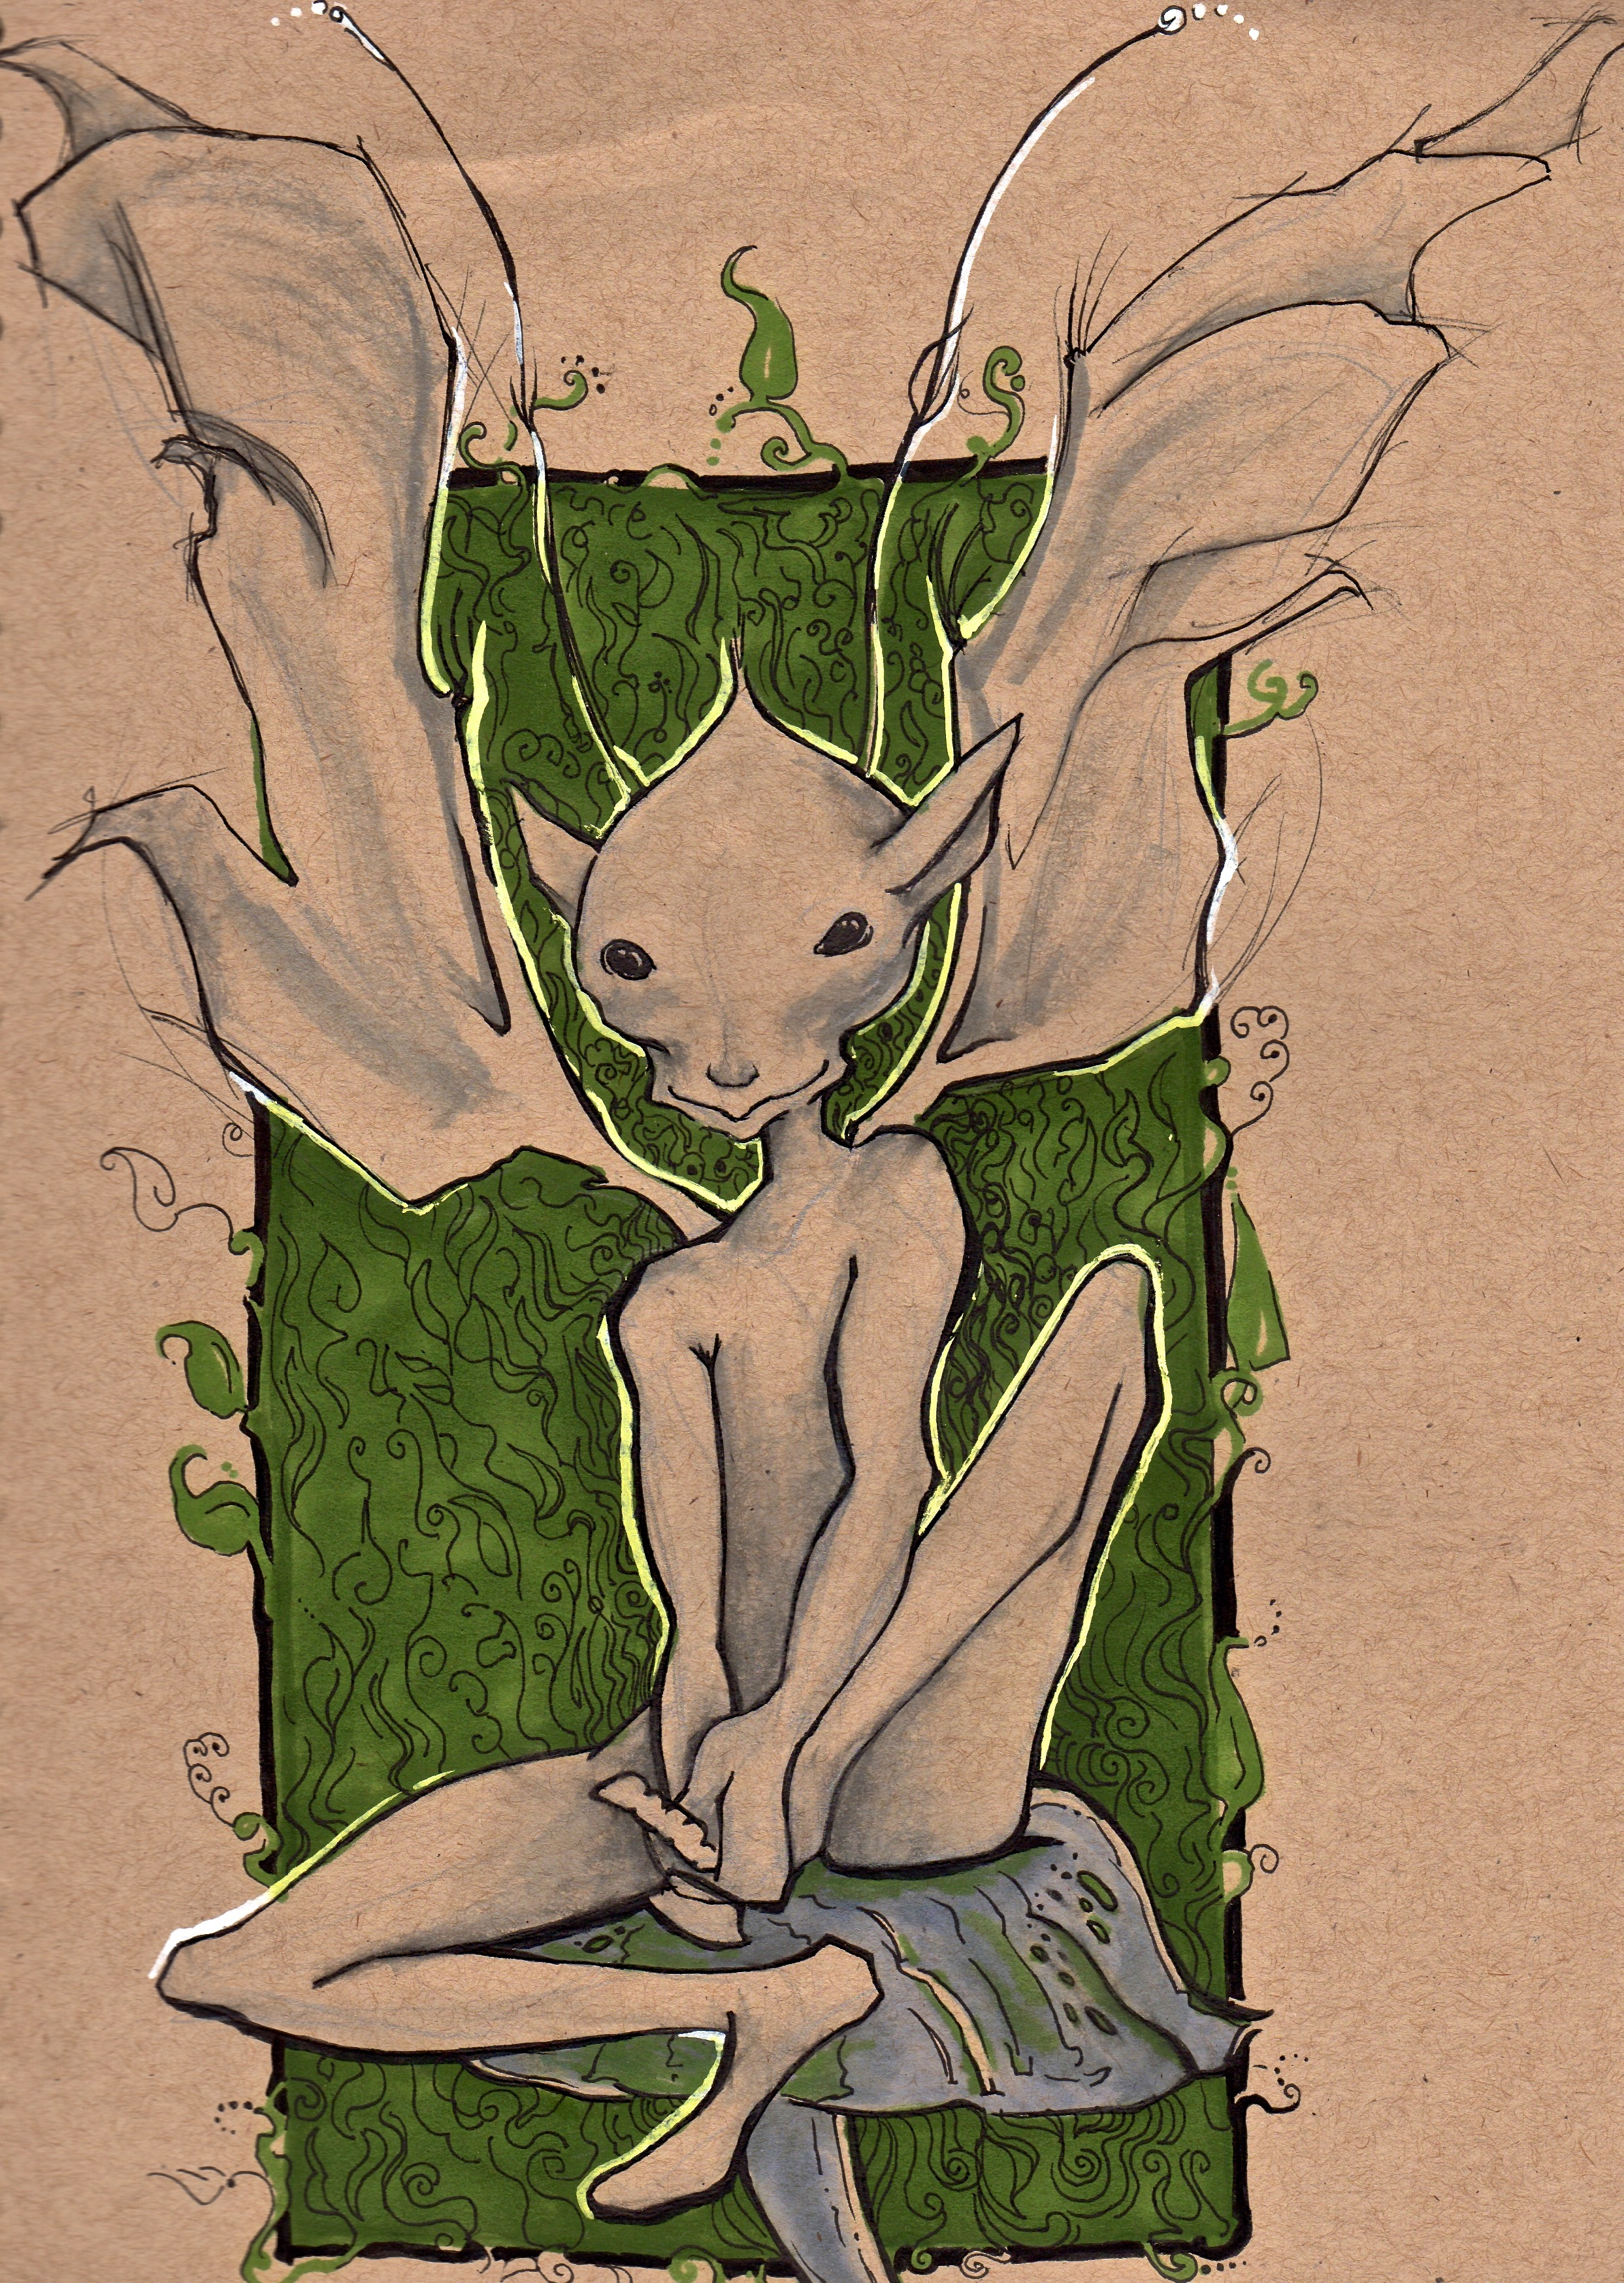 - The Fairy Tree Sleeve -  The Foot Fairy that will be surrounding the tree shown below.